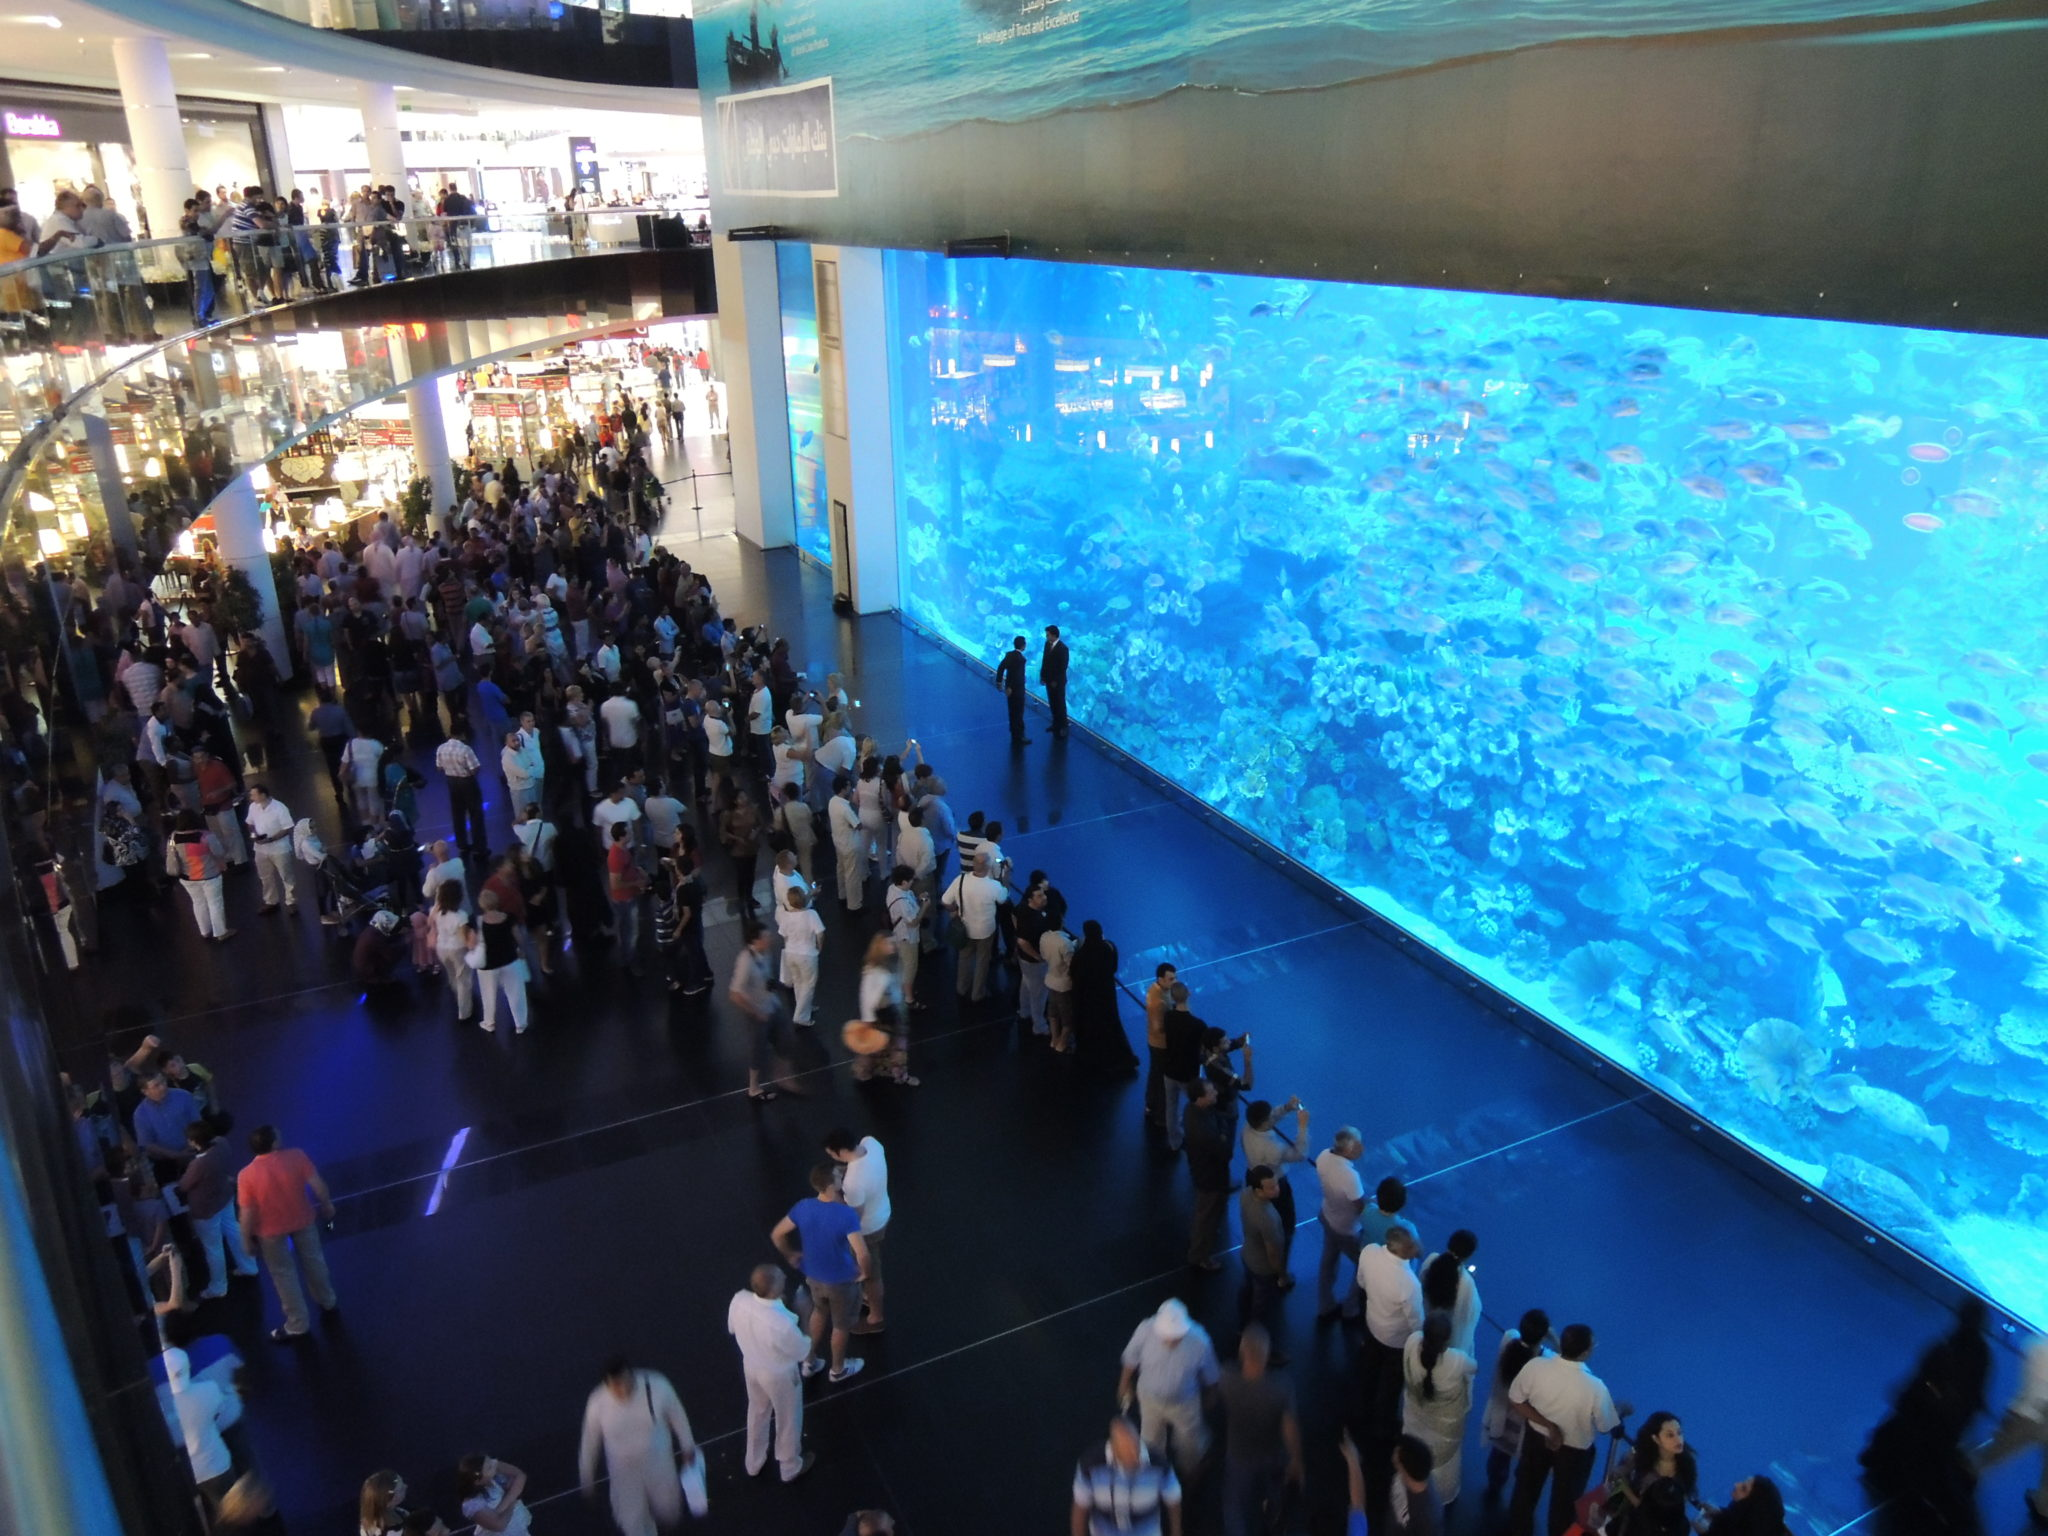 largest and best aquariums in the world 2017 top 10 aquariums world cities ranking bonus list